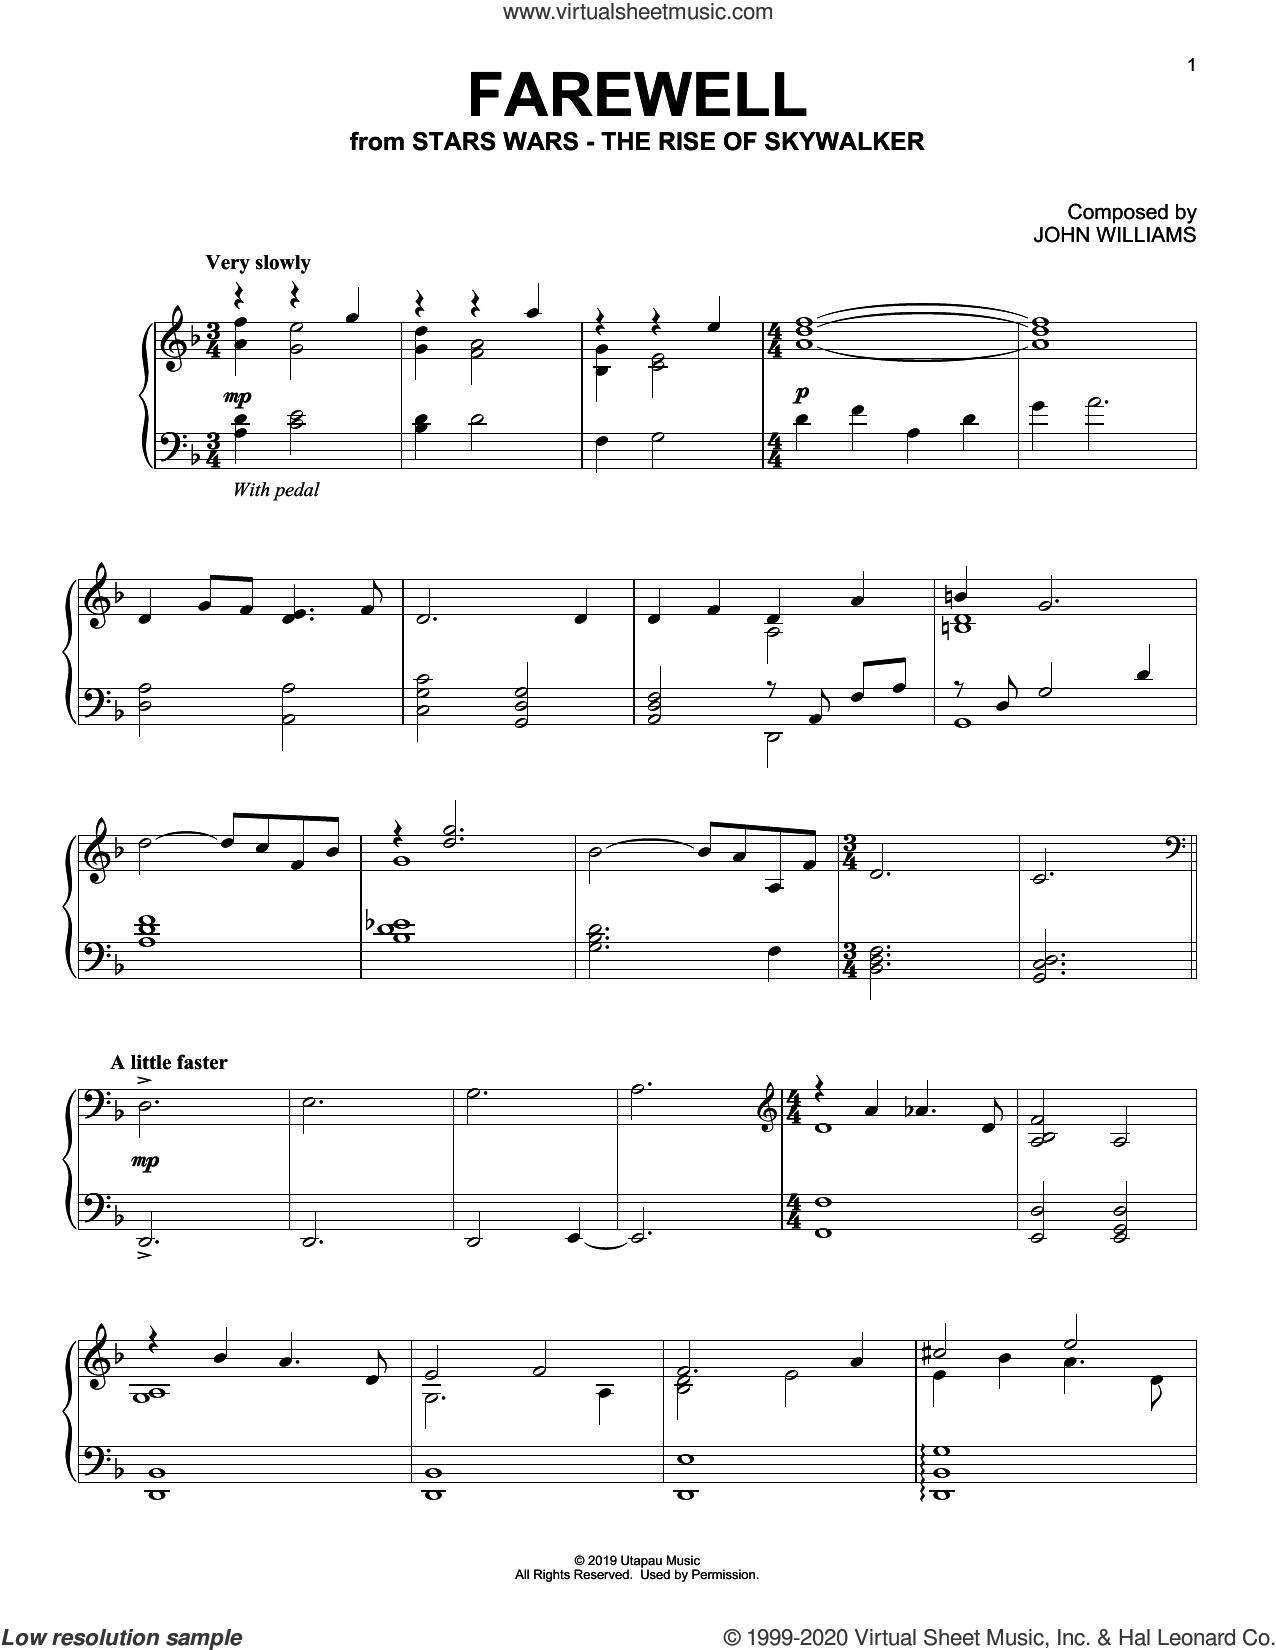 Farewell (from The Rise Of Skywalker) sheet music for piano solo by John Williams, intermediate skill level